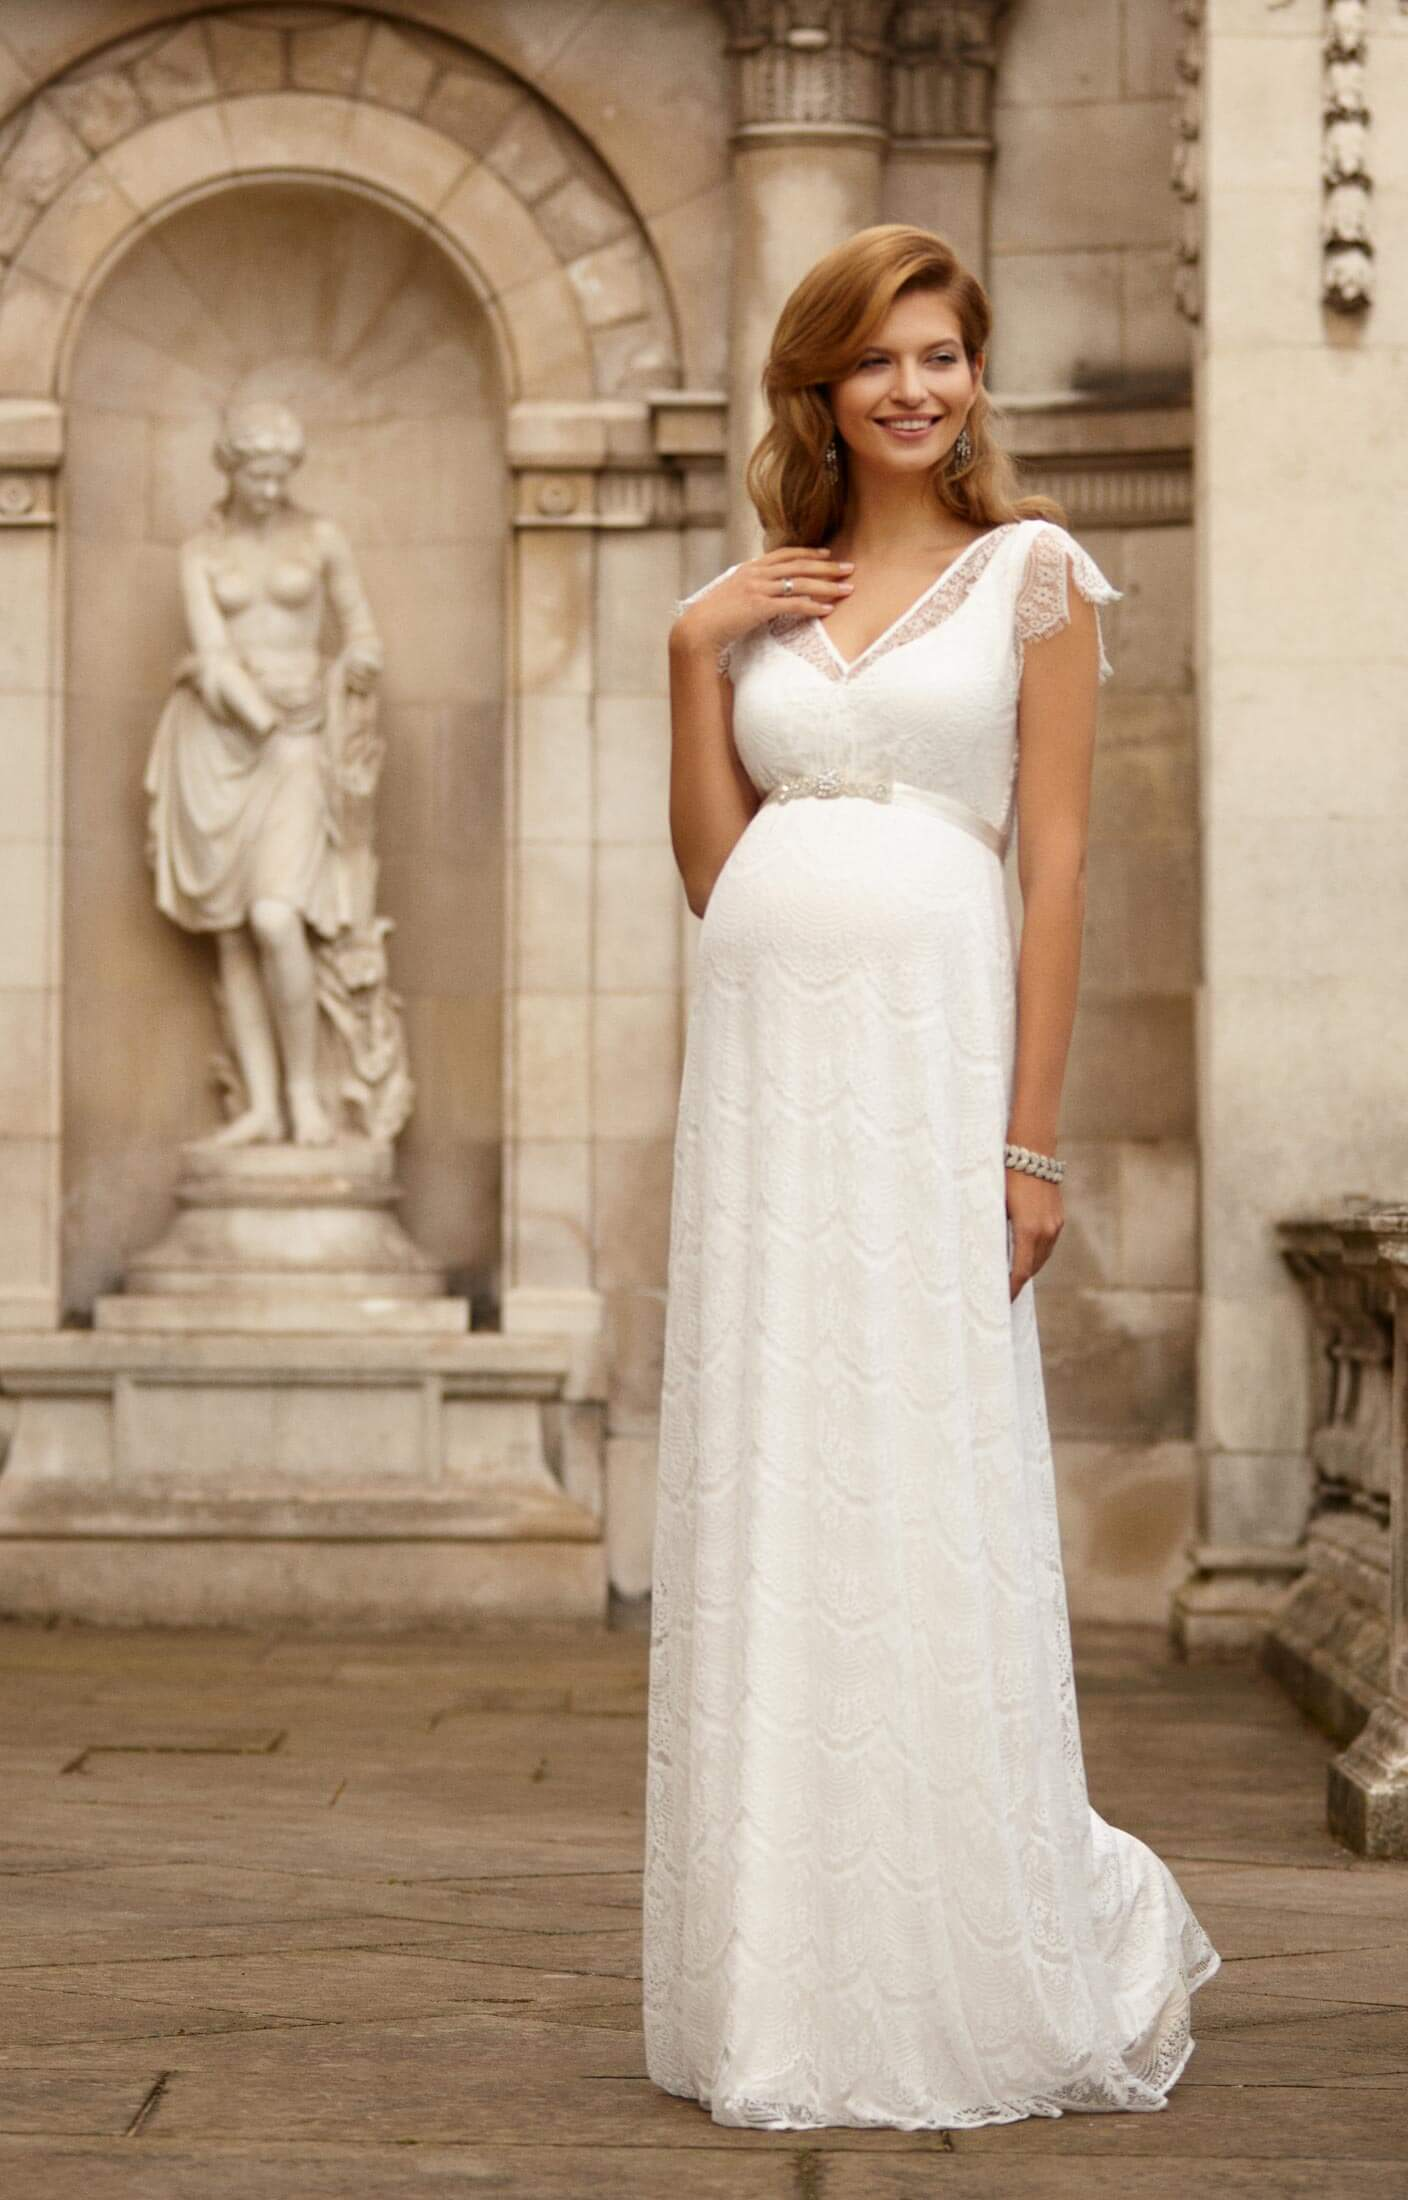 Kristin Maternity Wedding Gown Long Ivory - Maternity Wedding ...